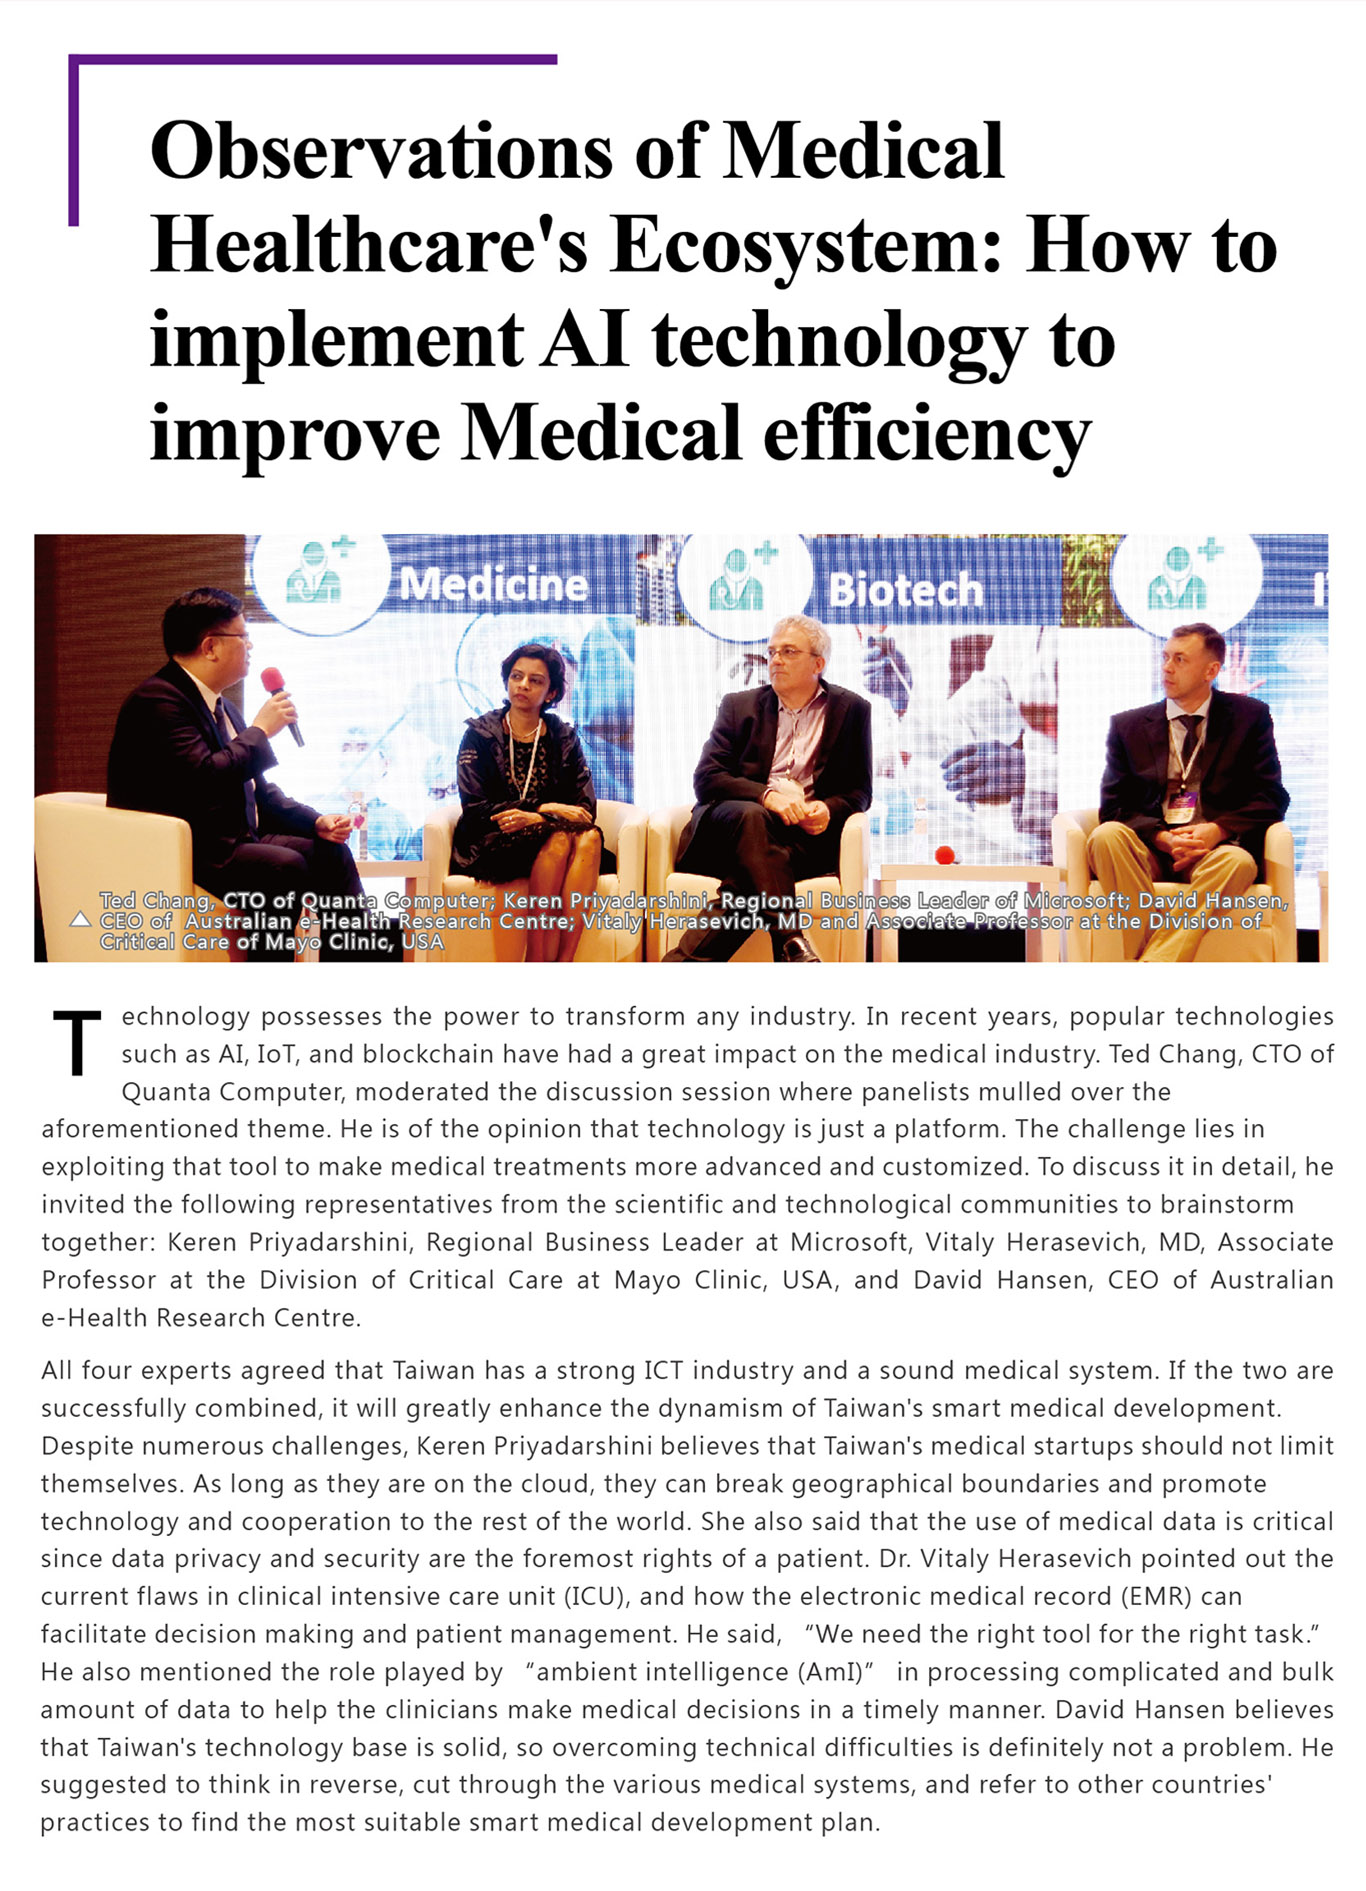 Observations of Medical Healthcare's Ecosystem: How to implement AI technology to improve Medical efficiency